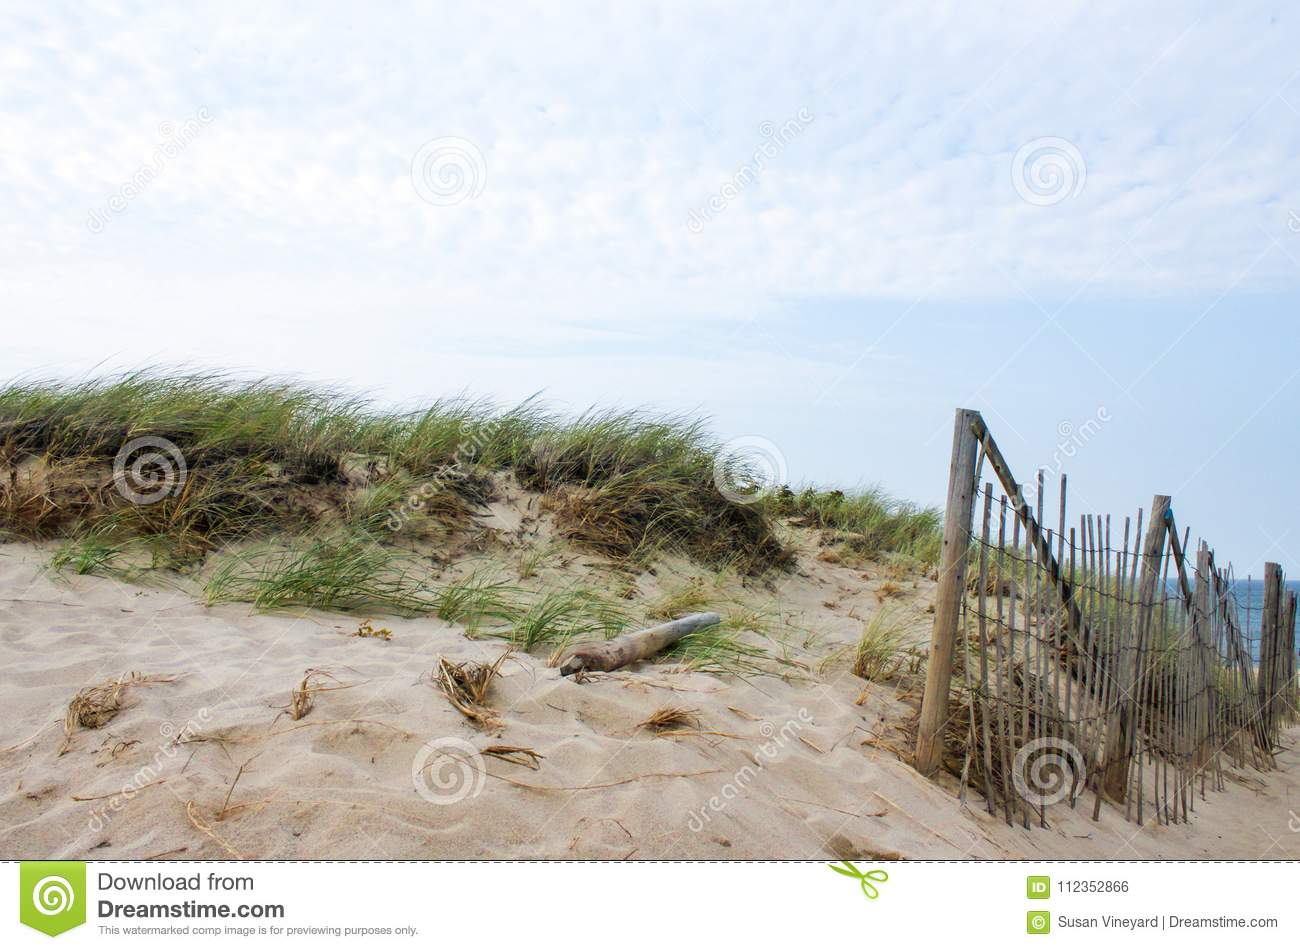 Dunes and sea grass and a bamboo barricade fence to control the drift of the sand on Cape Cod